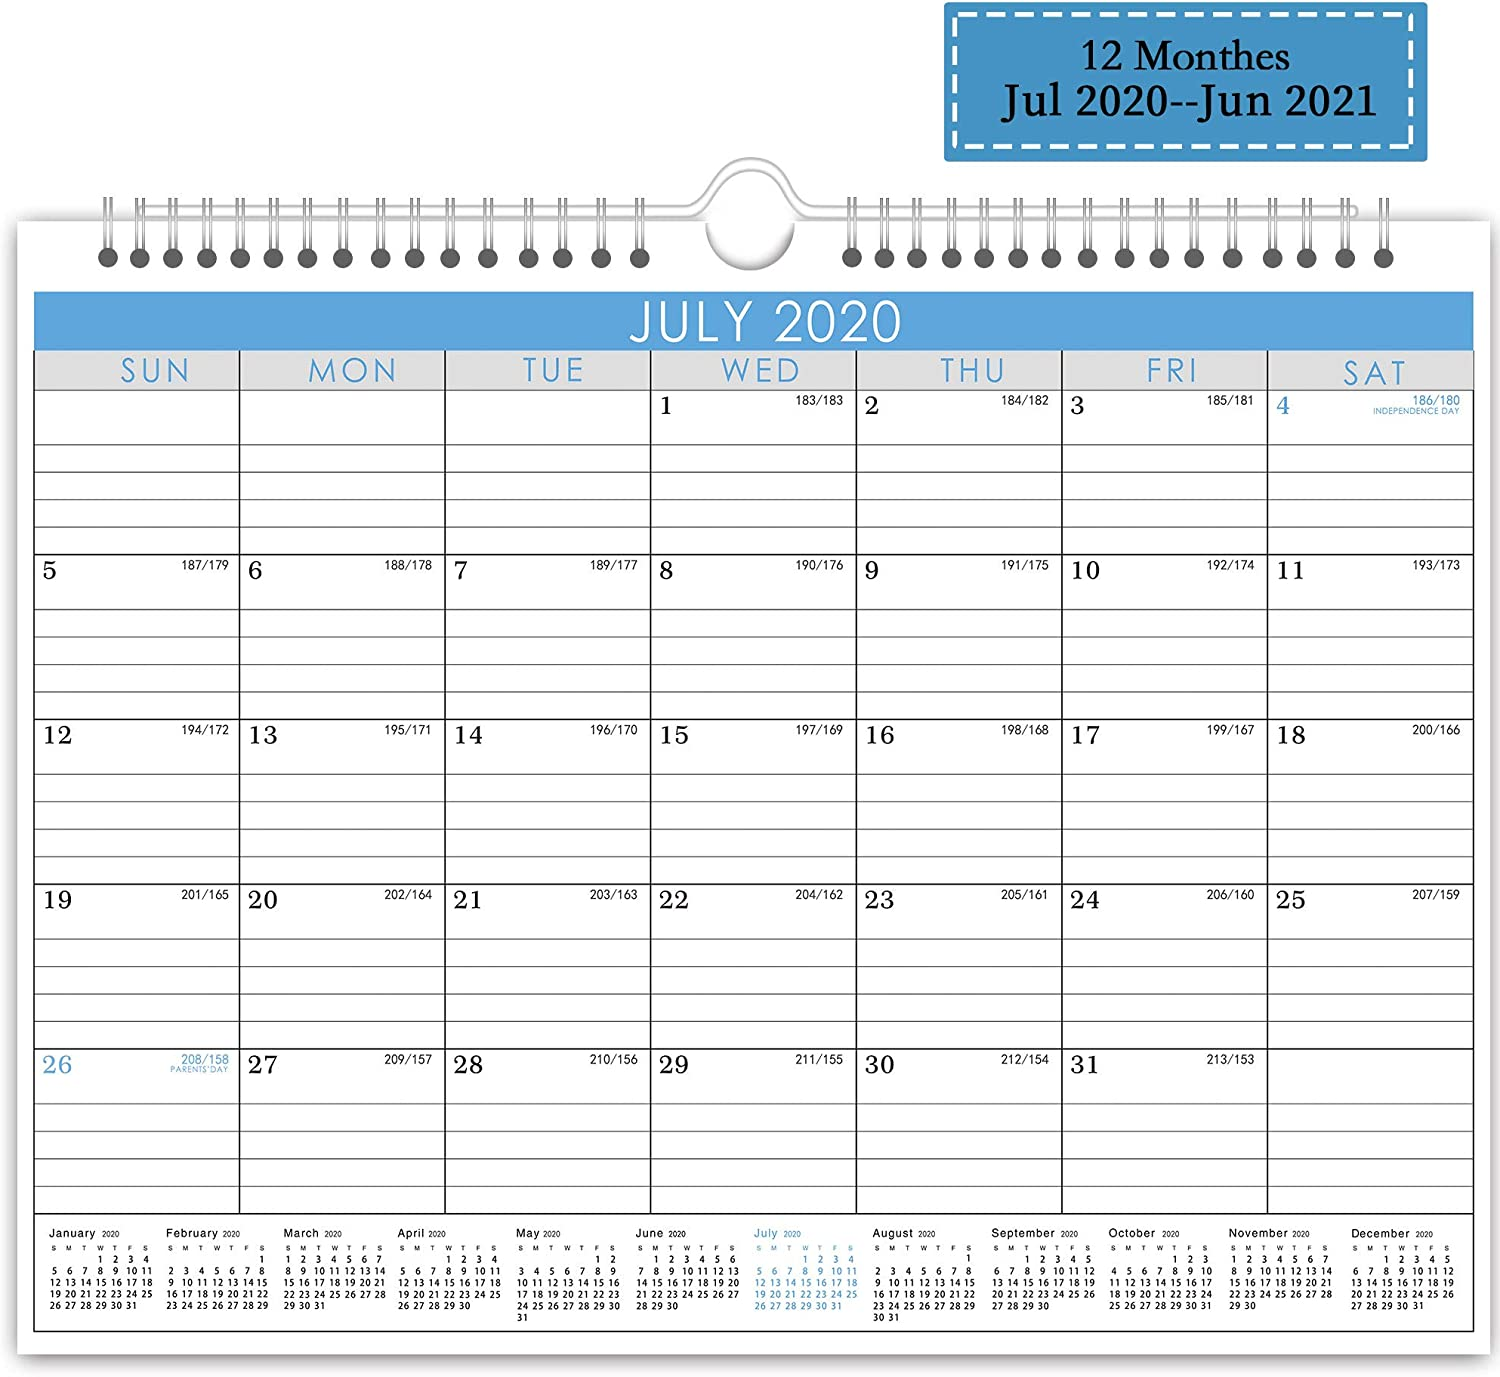 Wall Calendar July 2020-June 2021 Monthly Overview with Julian Date, Yearly Planner with Wire Bound Hanger, 12 Monthes Academic Desktop for Office and Family,11.5 × 15 inches